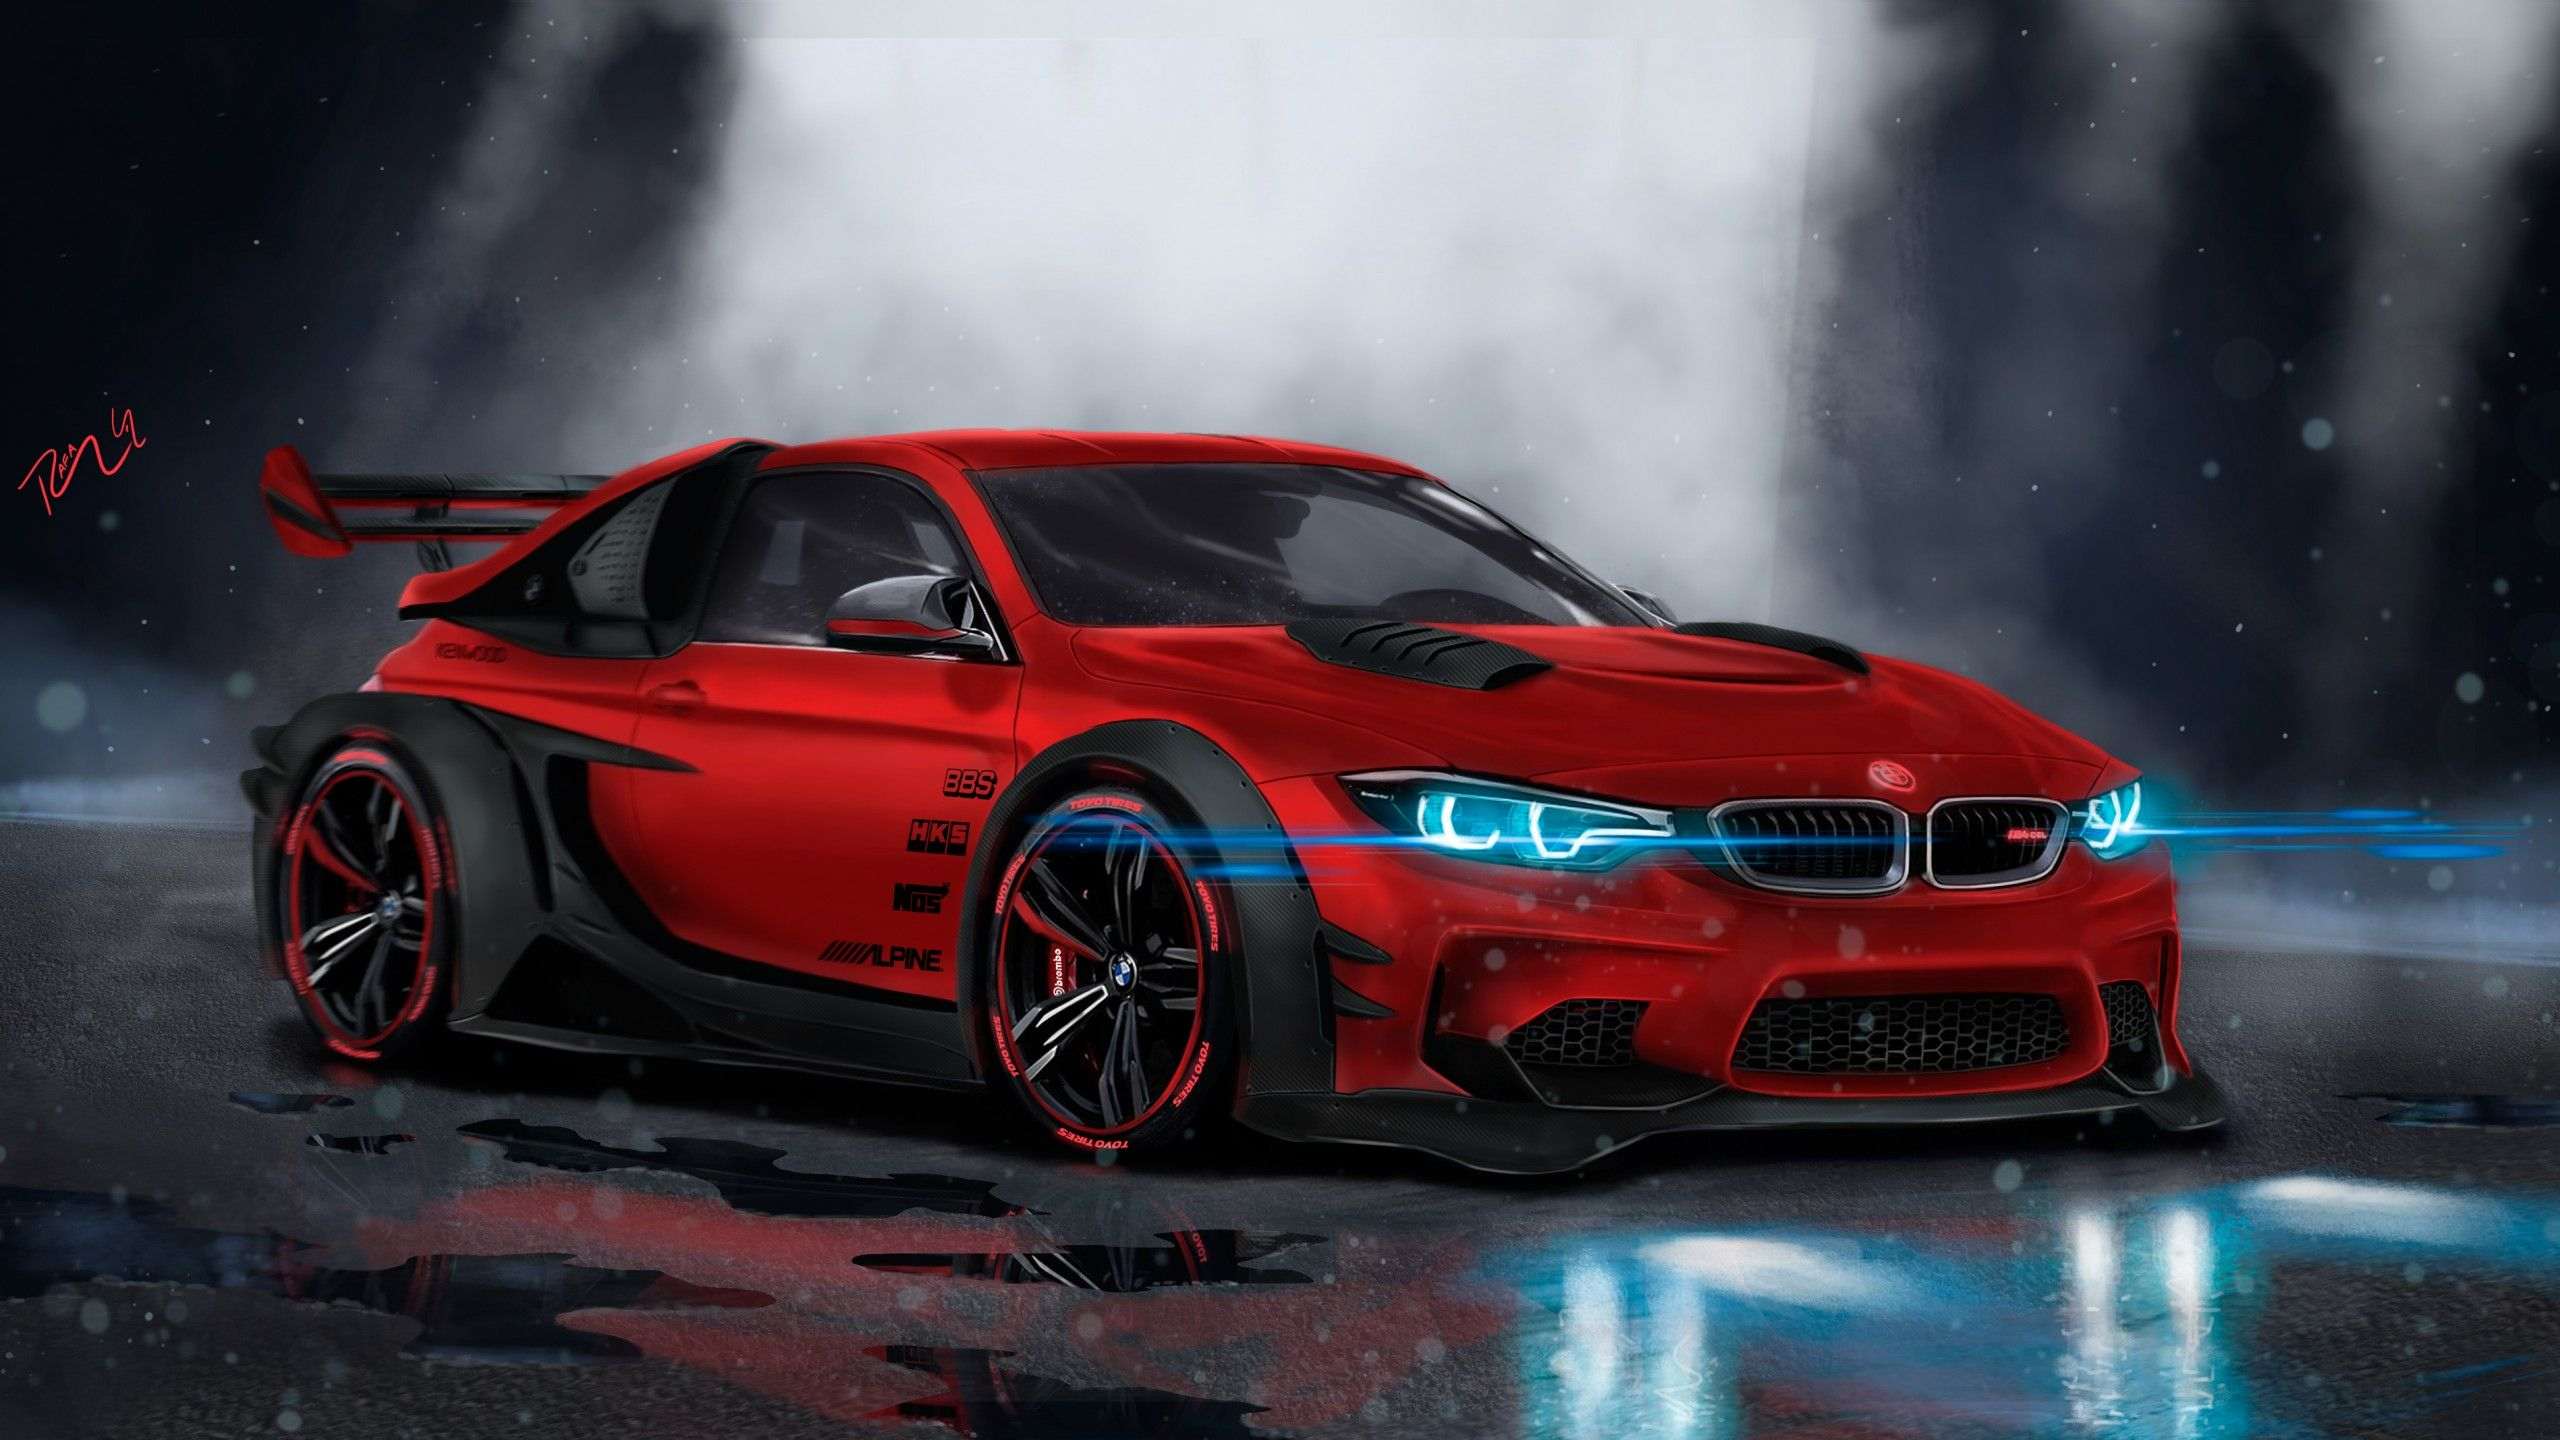 Wallpaper Bmw M4 Custom Cgi Neon Sport Car Hd 4k Wallpaper Bmw M4